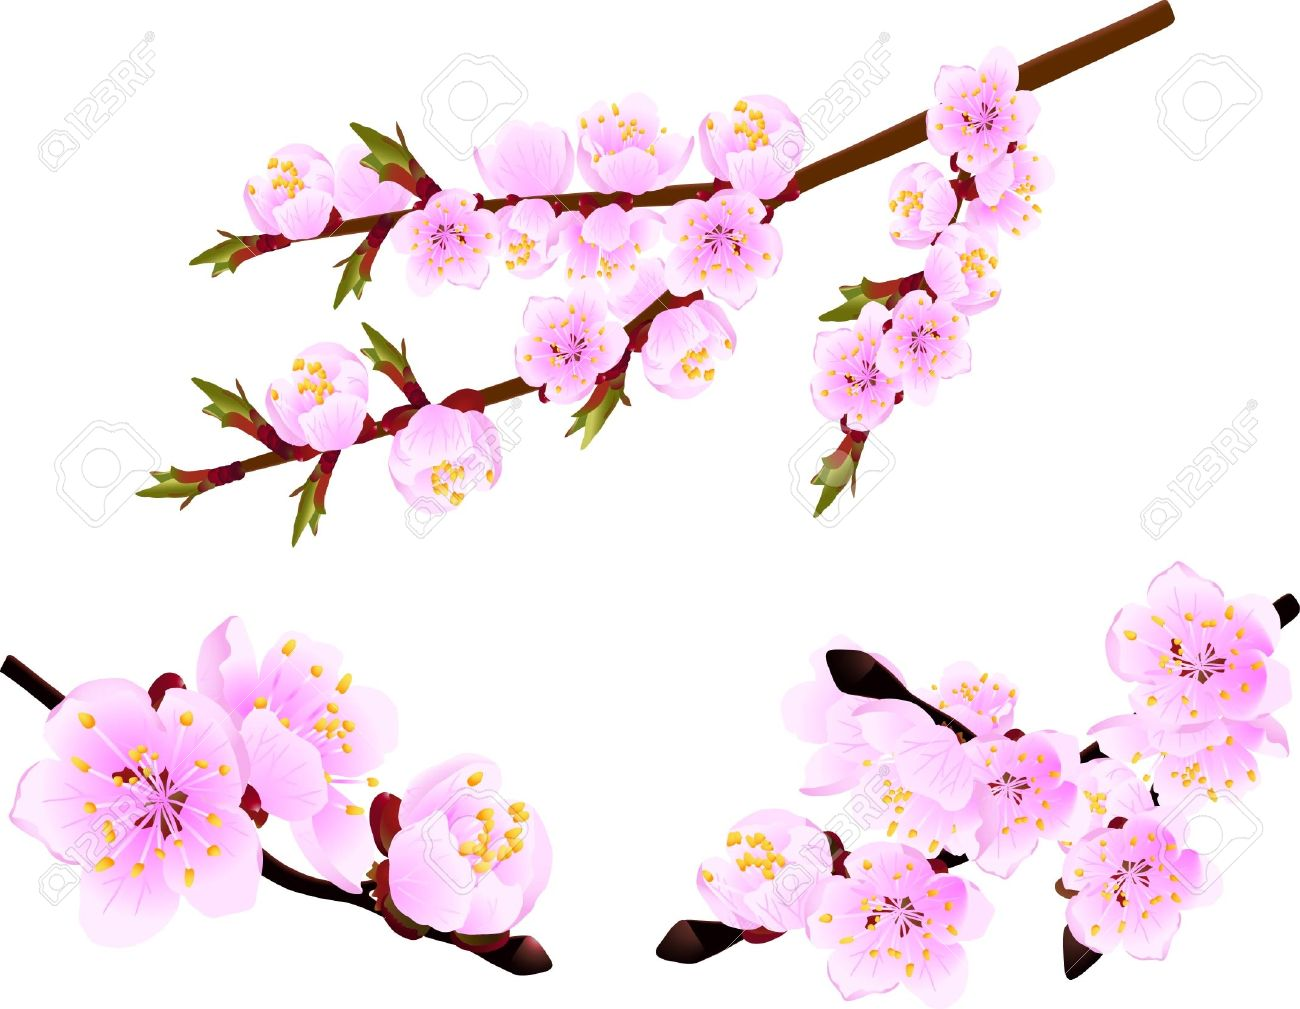 Apricot Blossom clipart #15, Download drawings